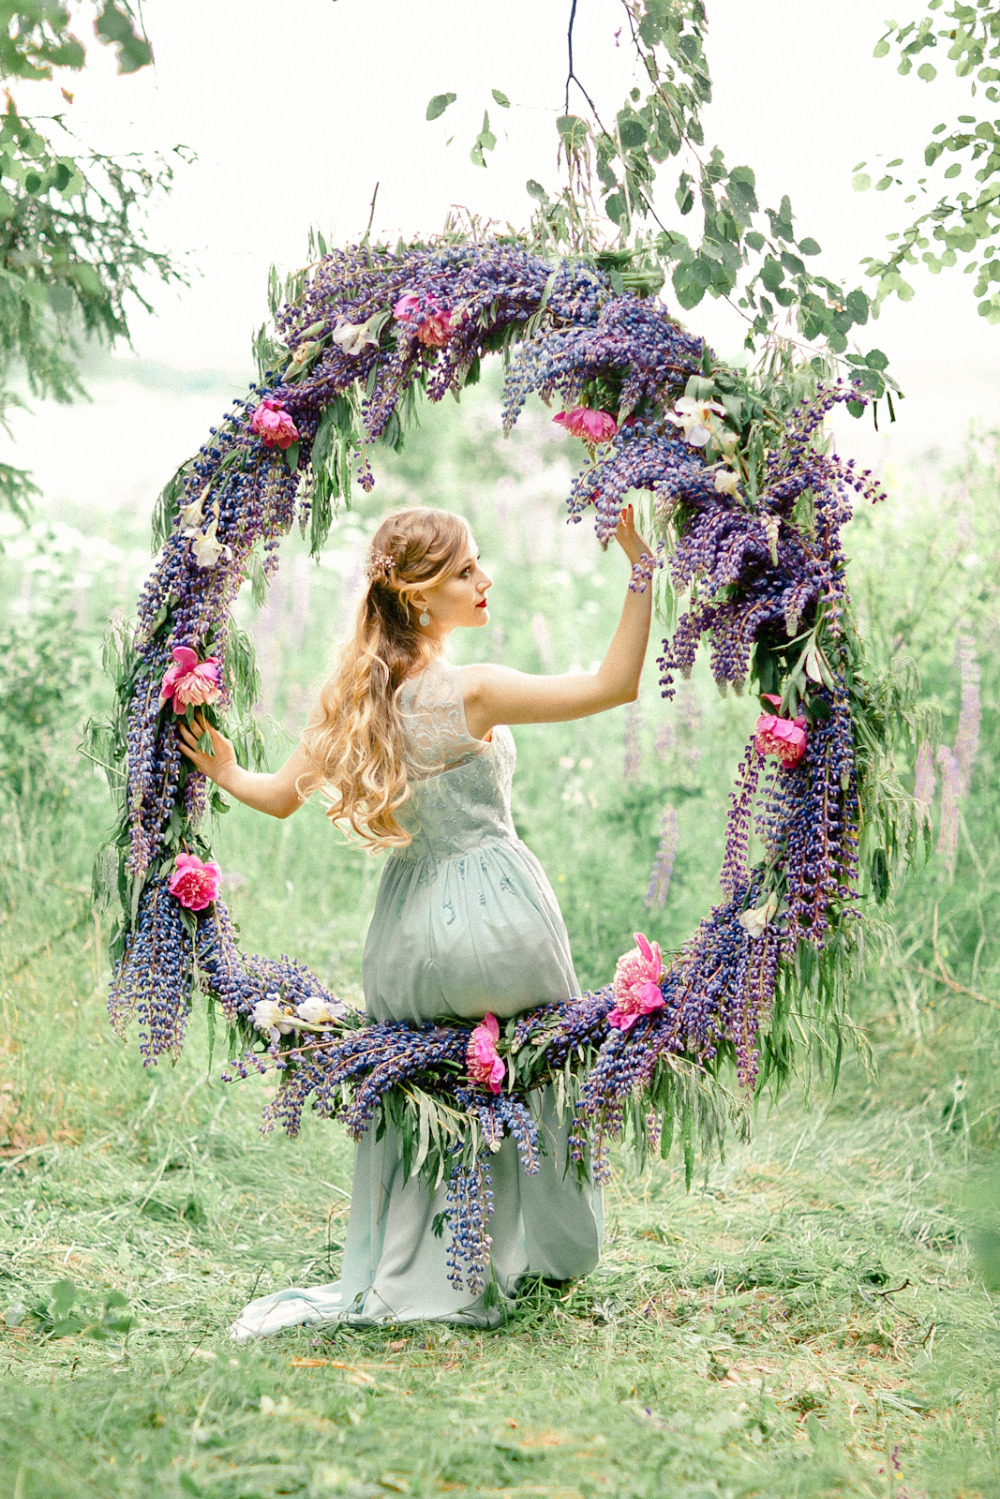 floral wreath wedding ceremony backdrop decor